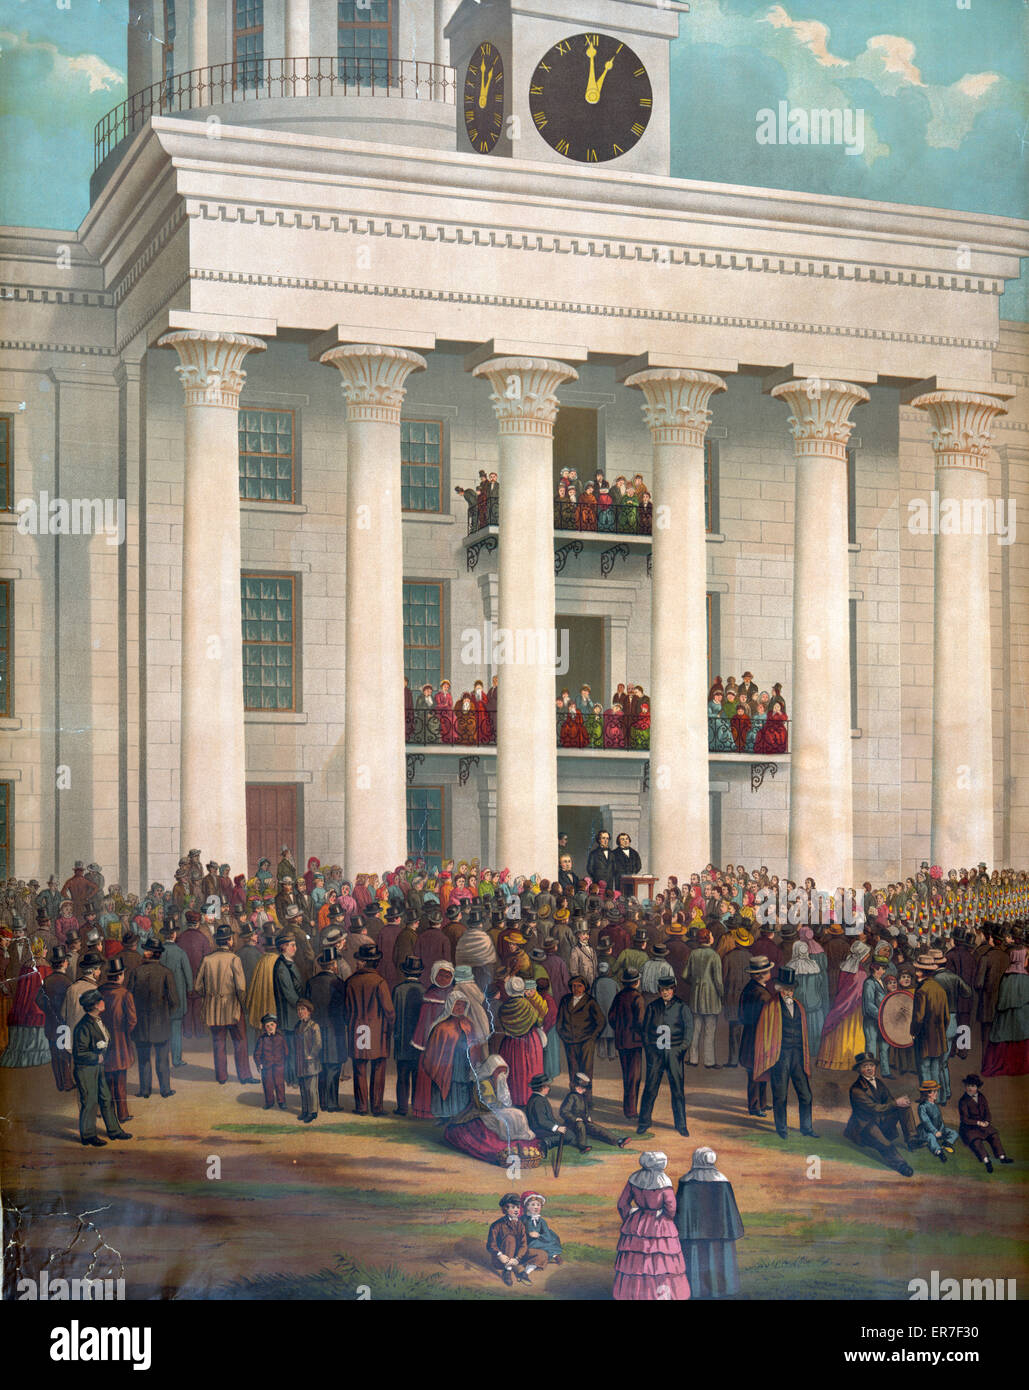 The starting point of the great war between the states. Inauguration of Jefferson Davis. Date c1878. - Stock Image